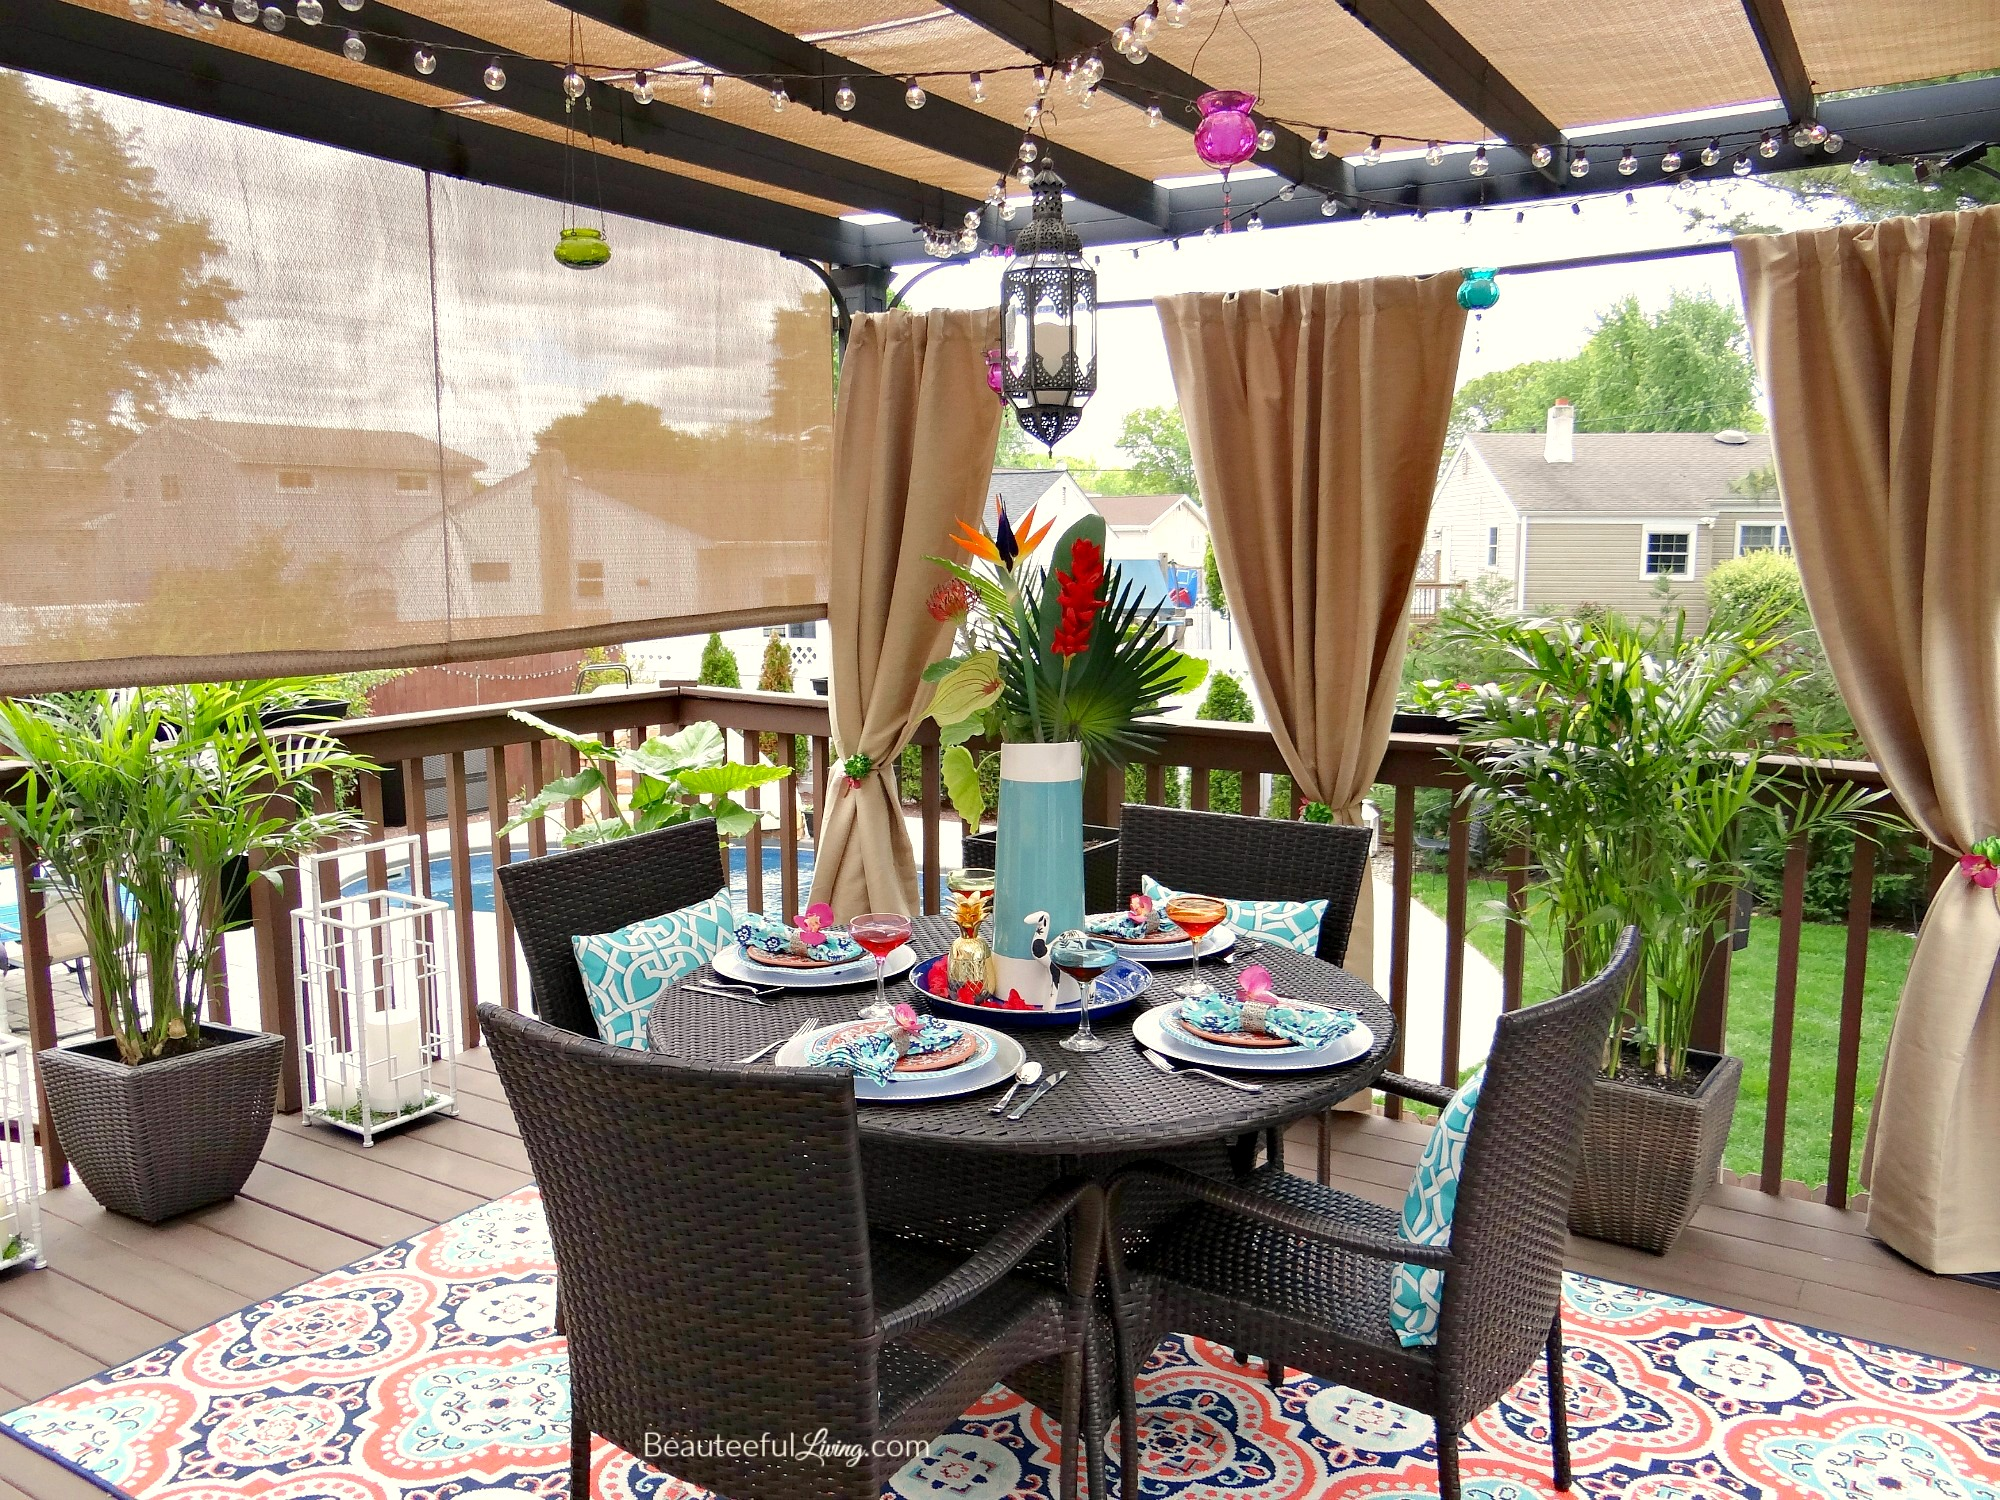 Tropical Patio   Beauteeful Living